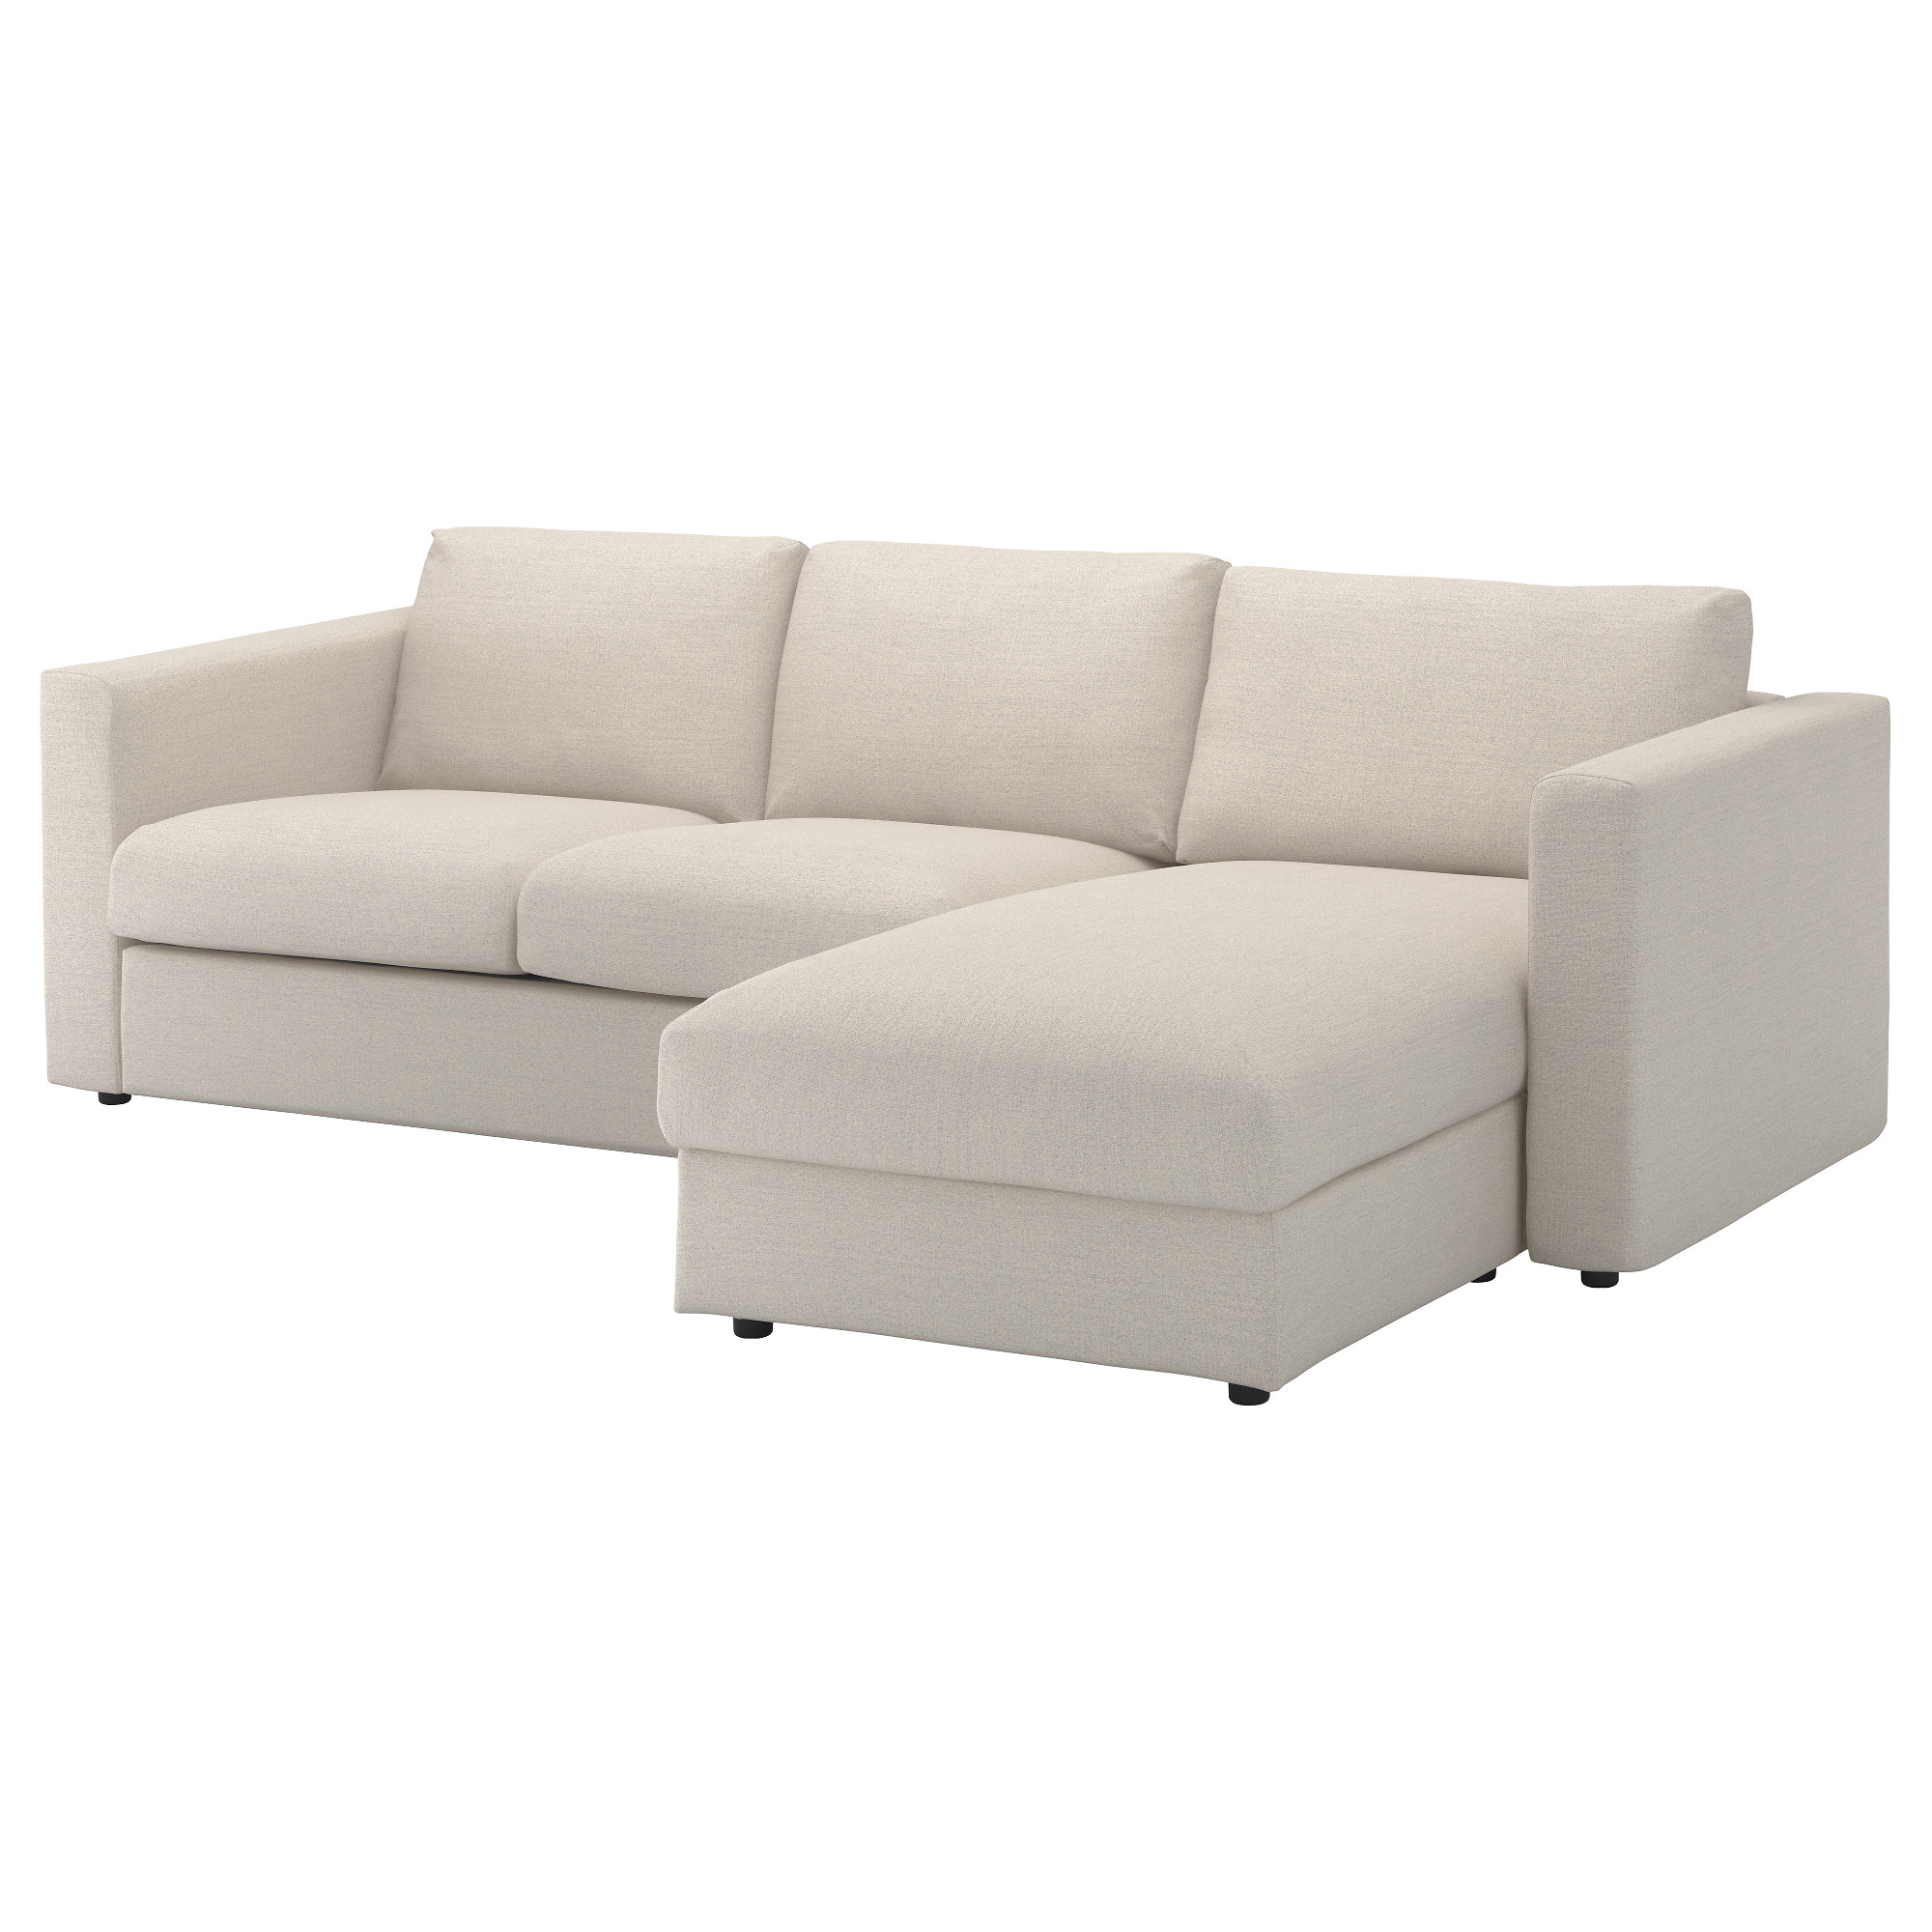 Klassische Sofas You Can Assemble Vimle Sofa With Chaise Gunnared Beige